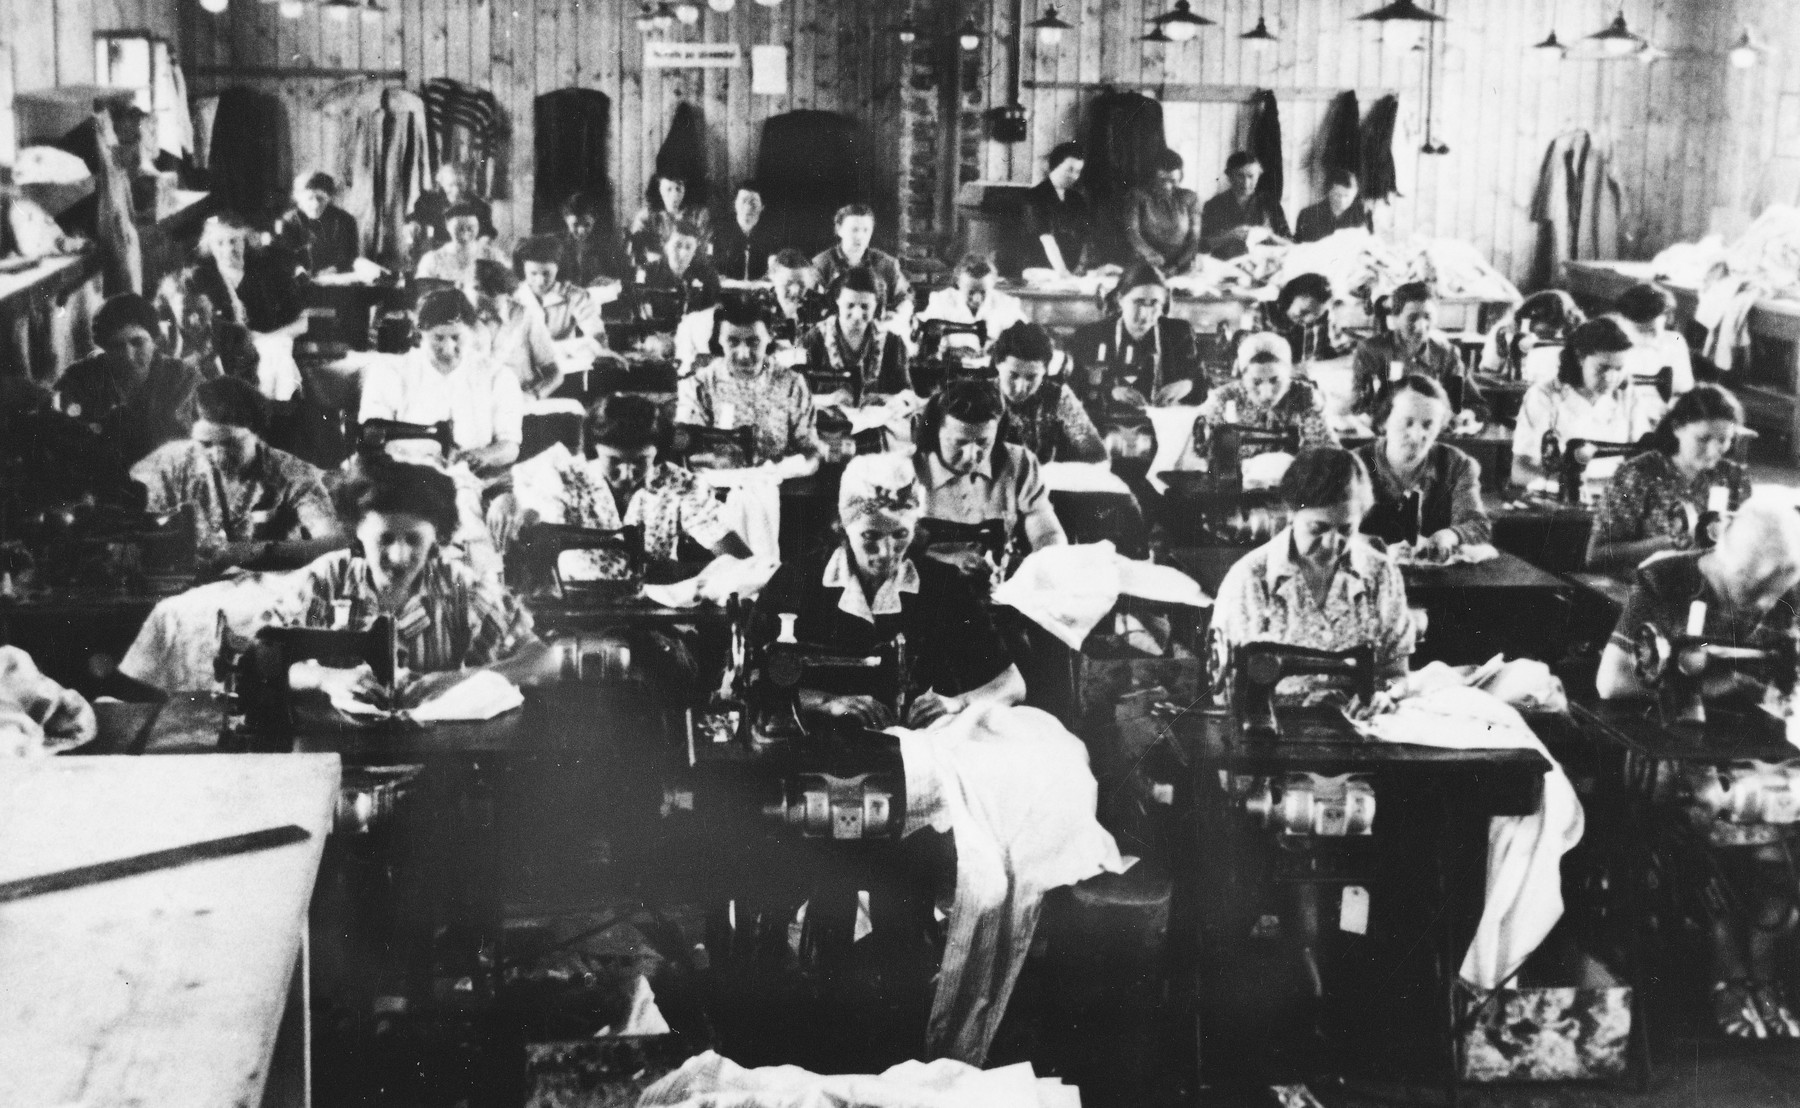 Prisoners sew clothing at a Slovak labor camp.